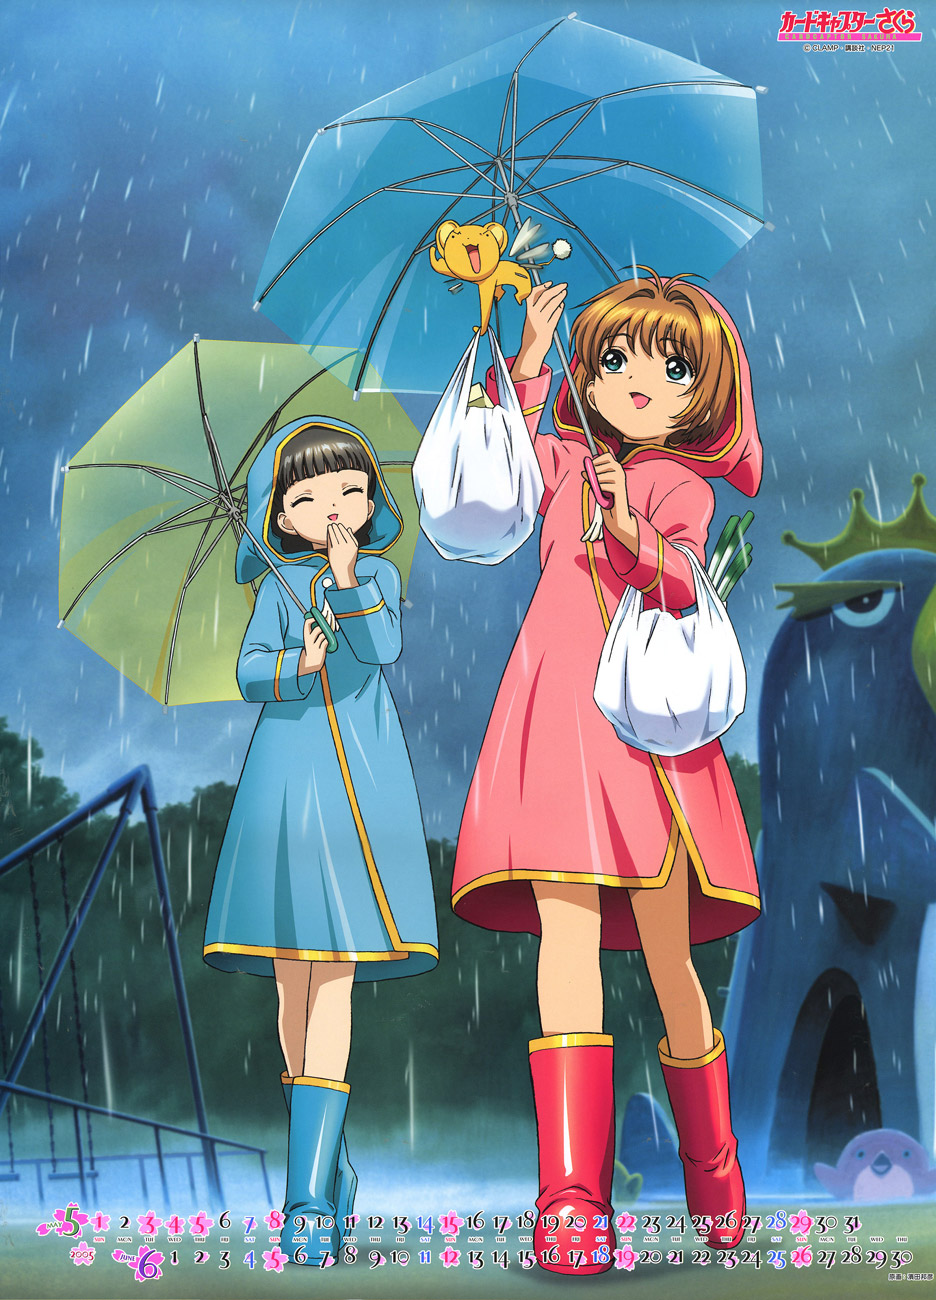 Card Captor Sakura 2005 Calendar image by Clamp